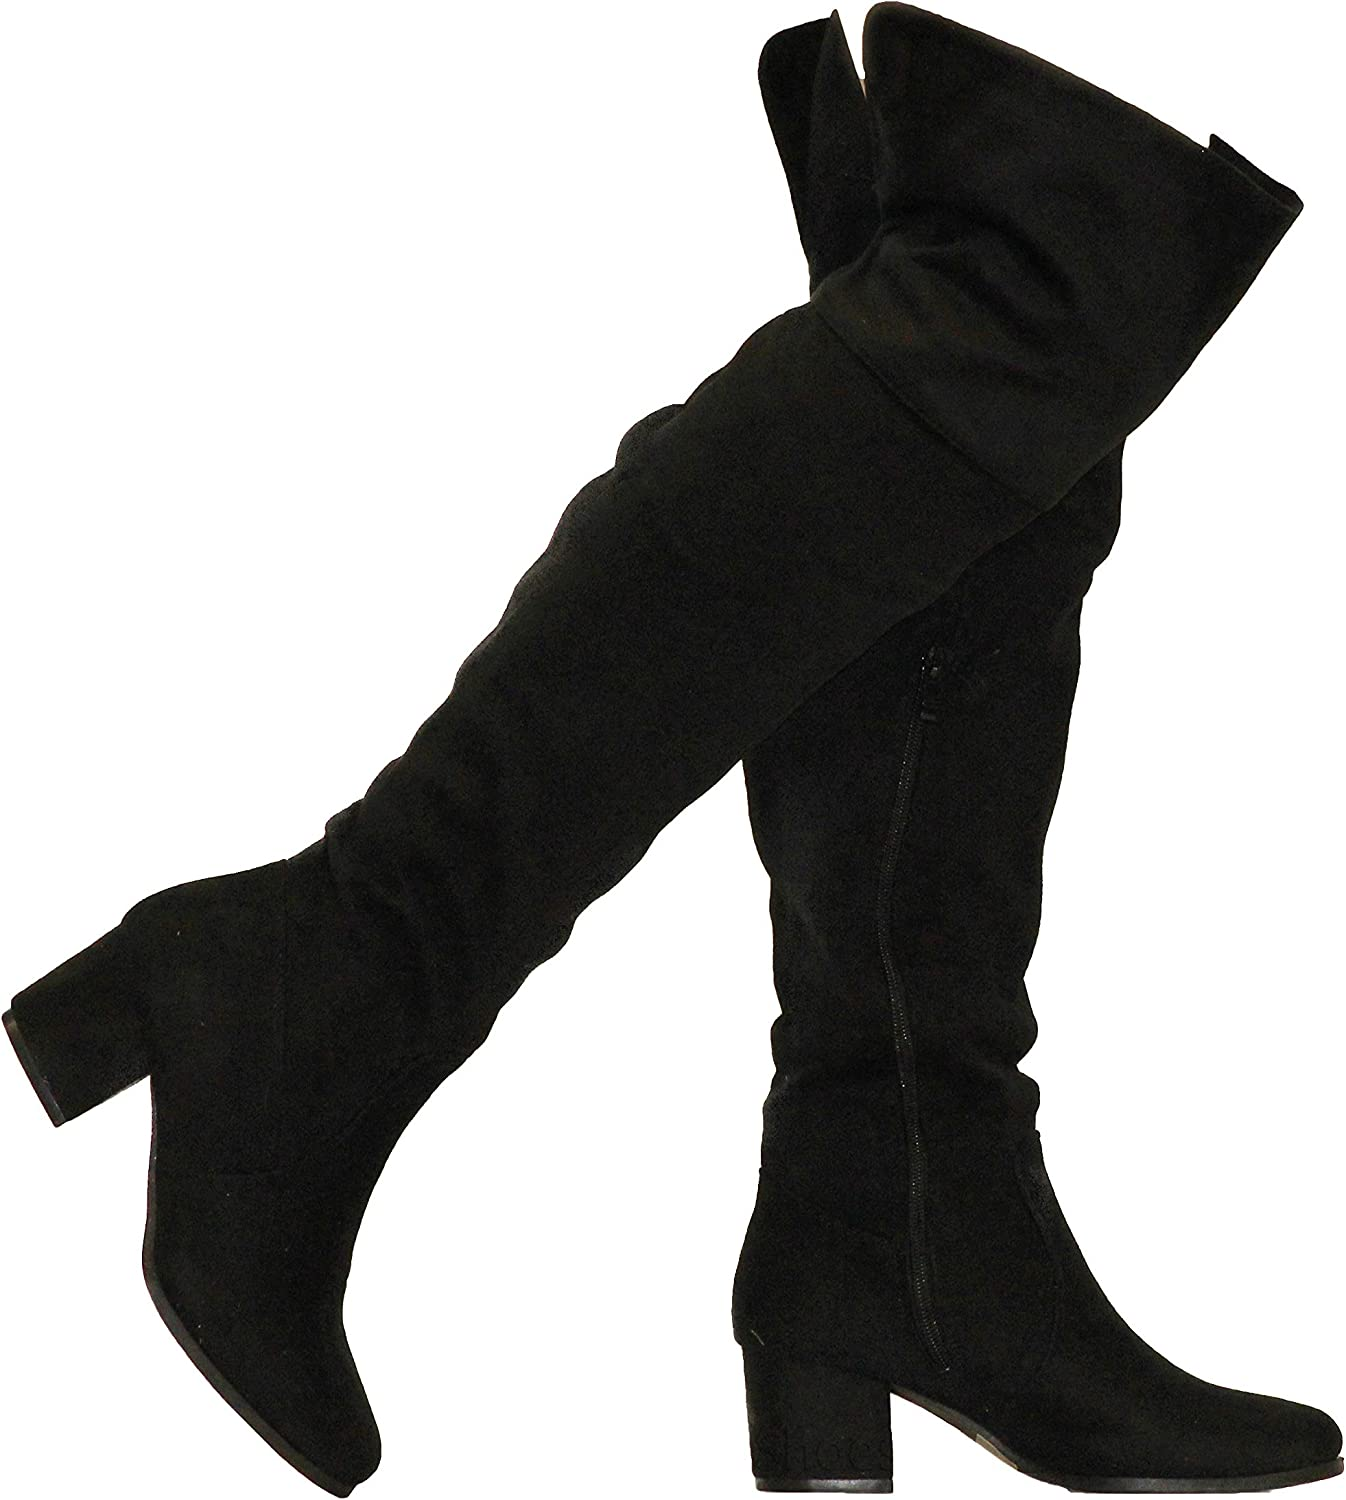 MVE shoes Women's Knee-high Faux Leather - Comfortable Fashion Boots